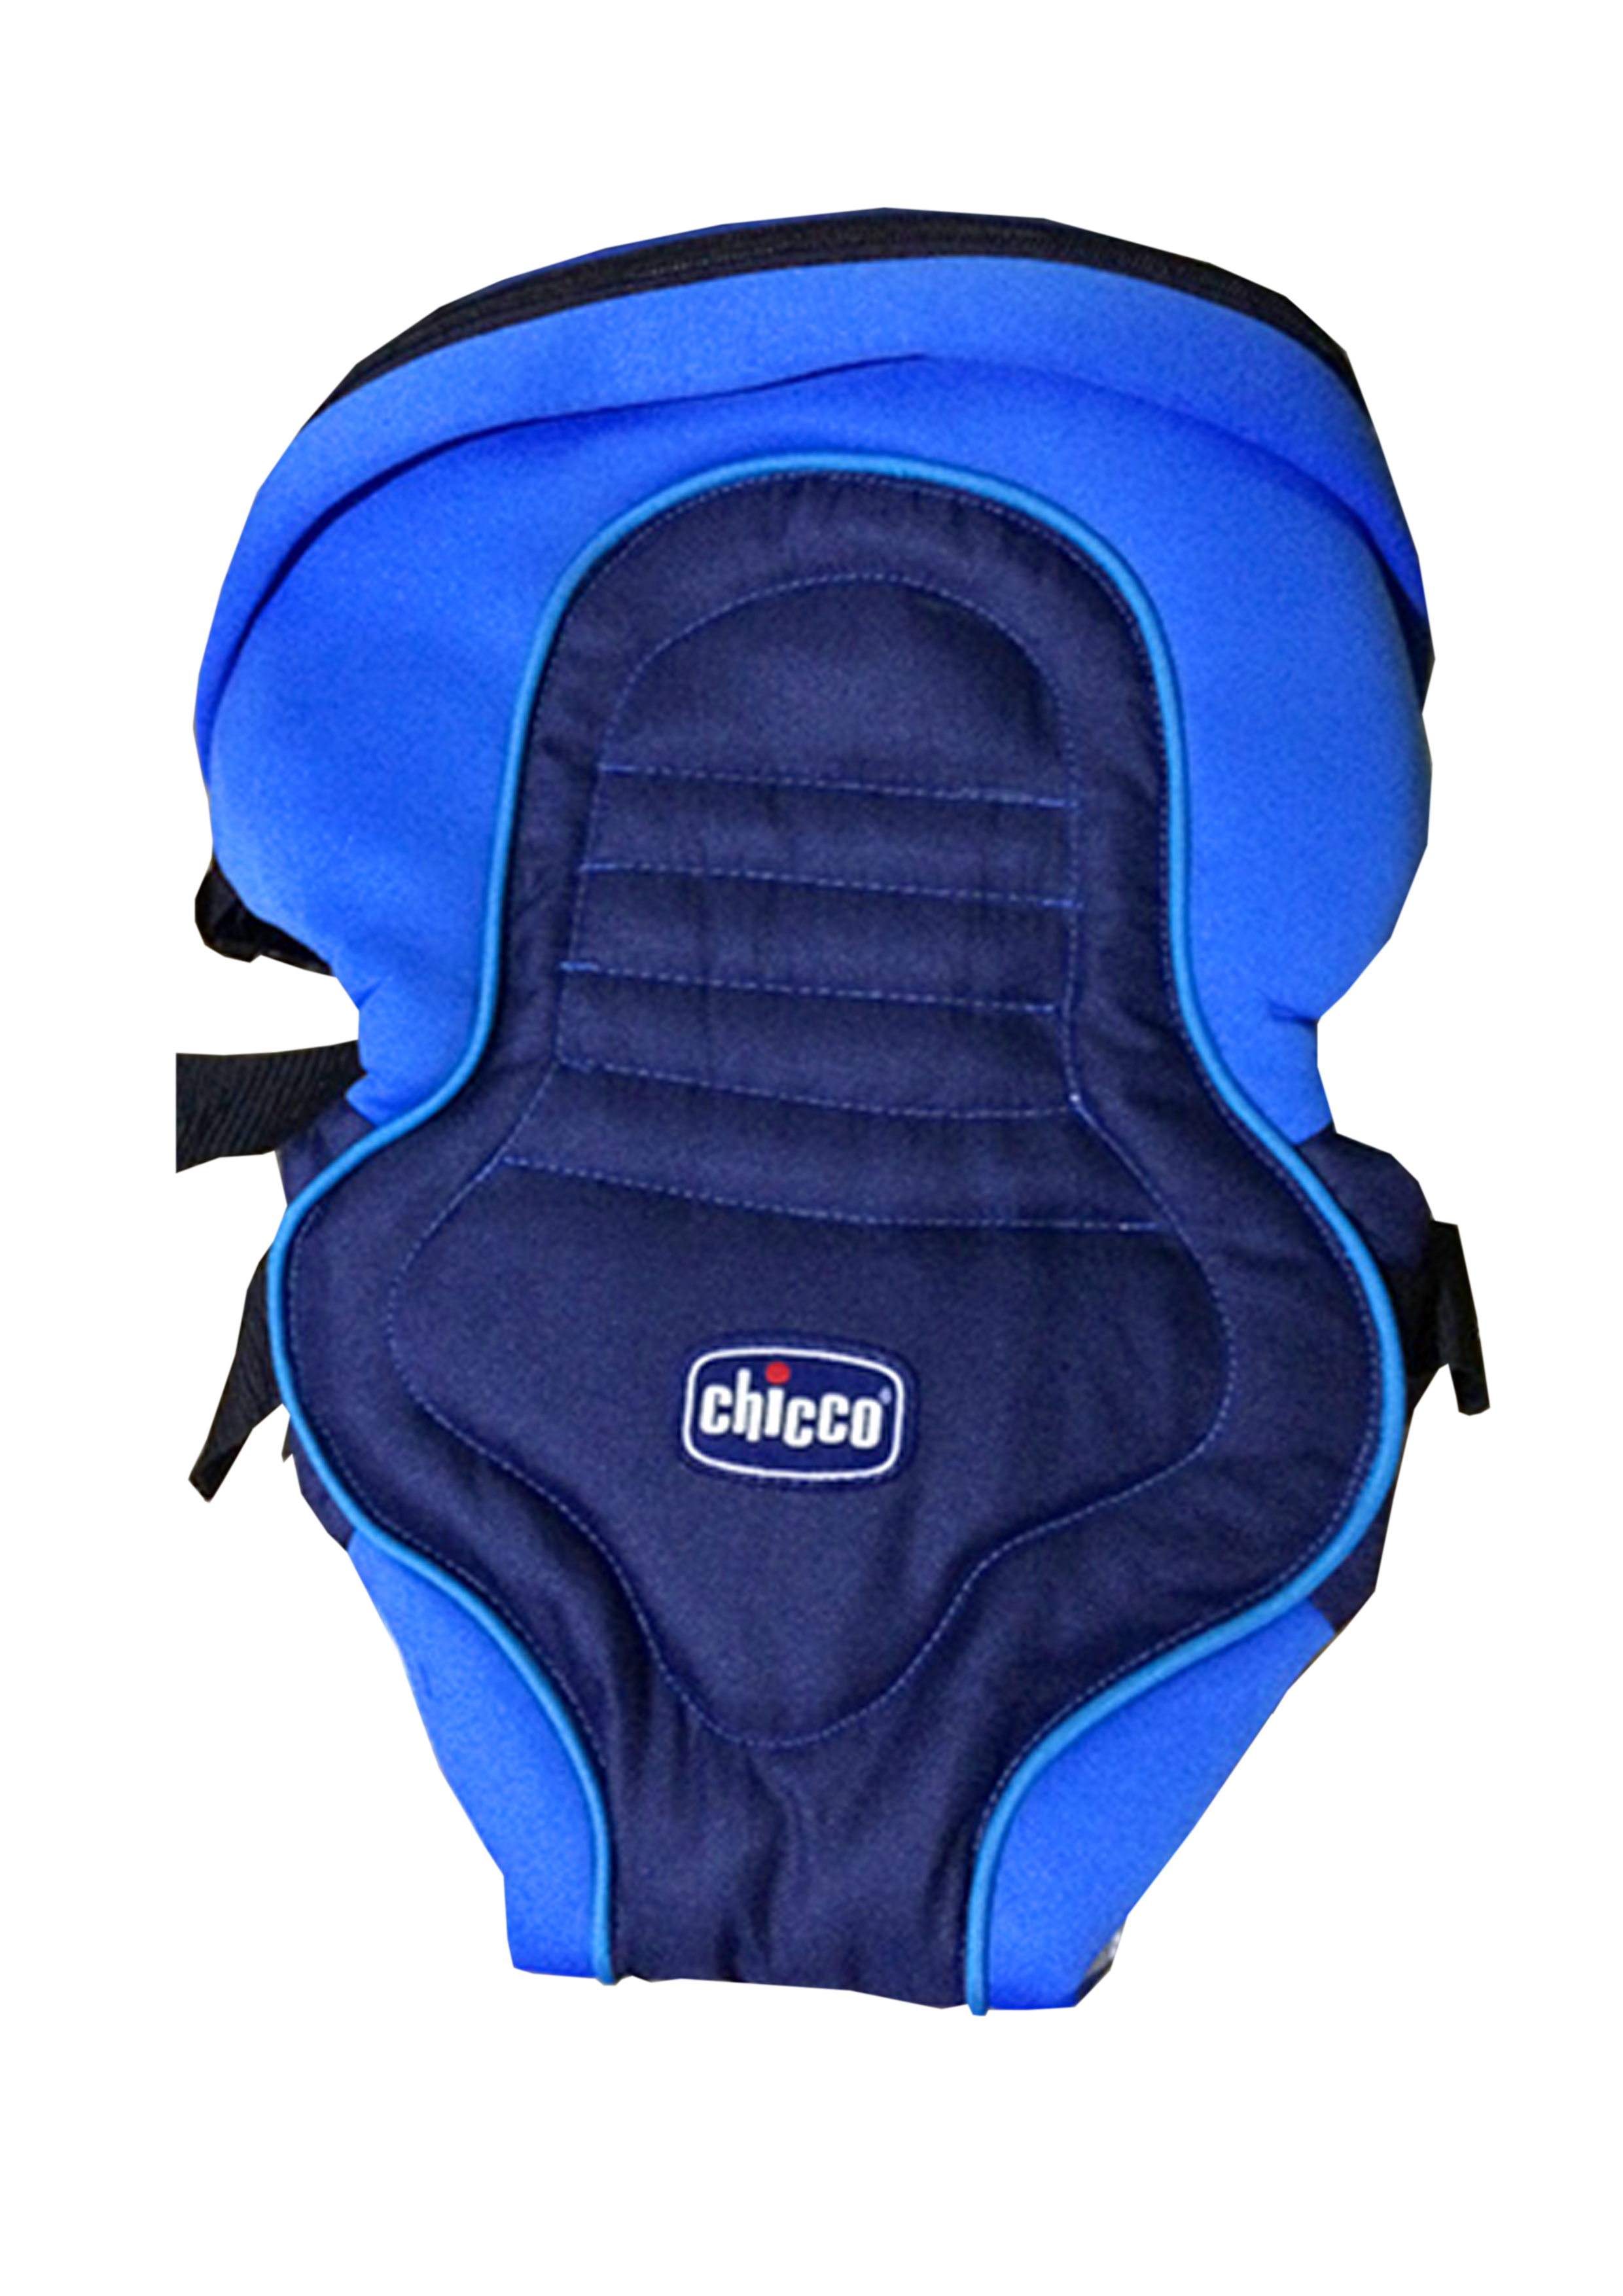 chicco baby backpack instructions